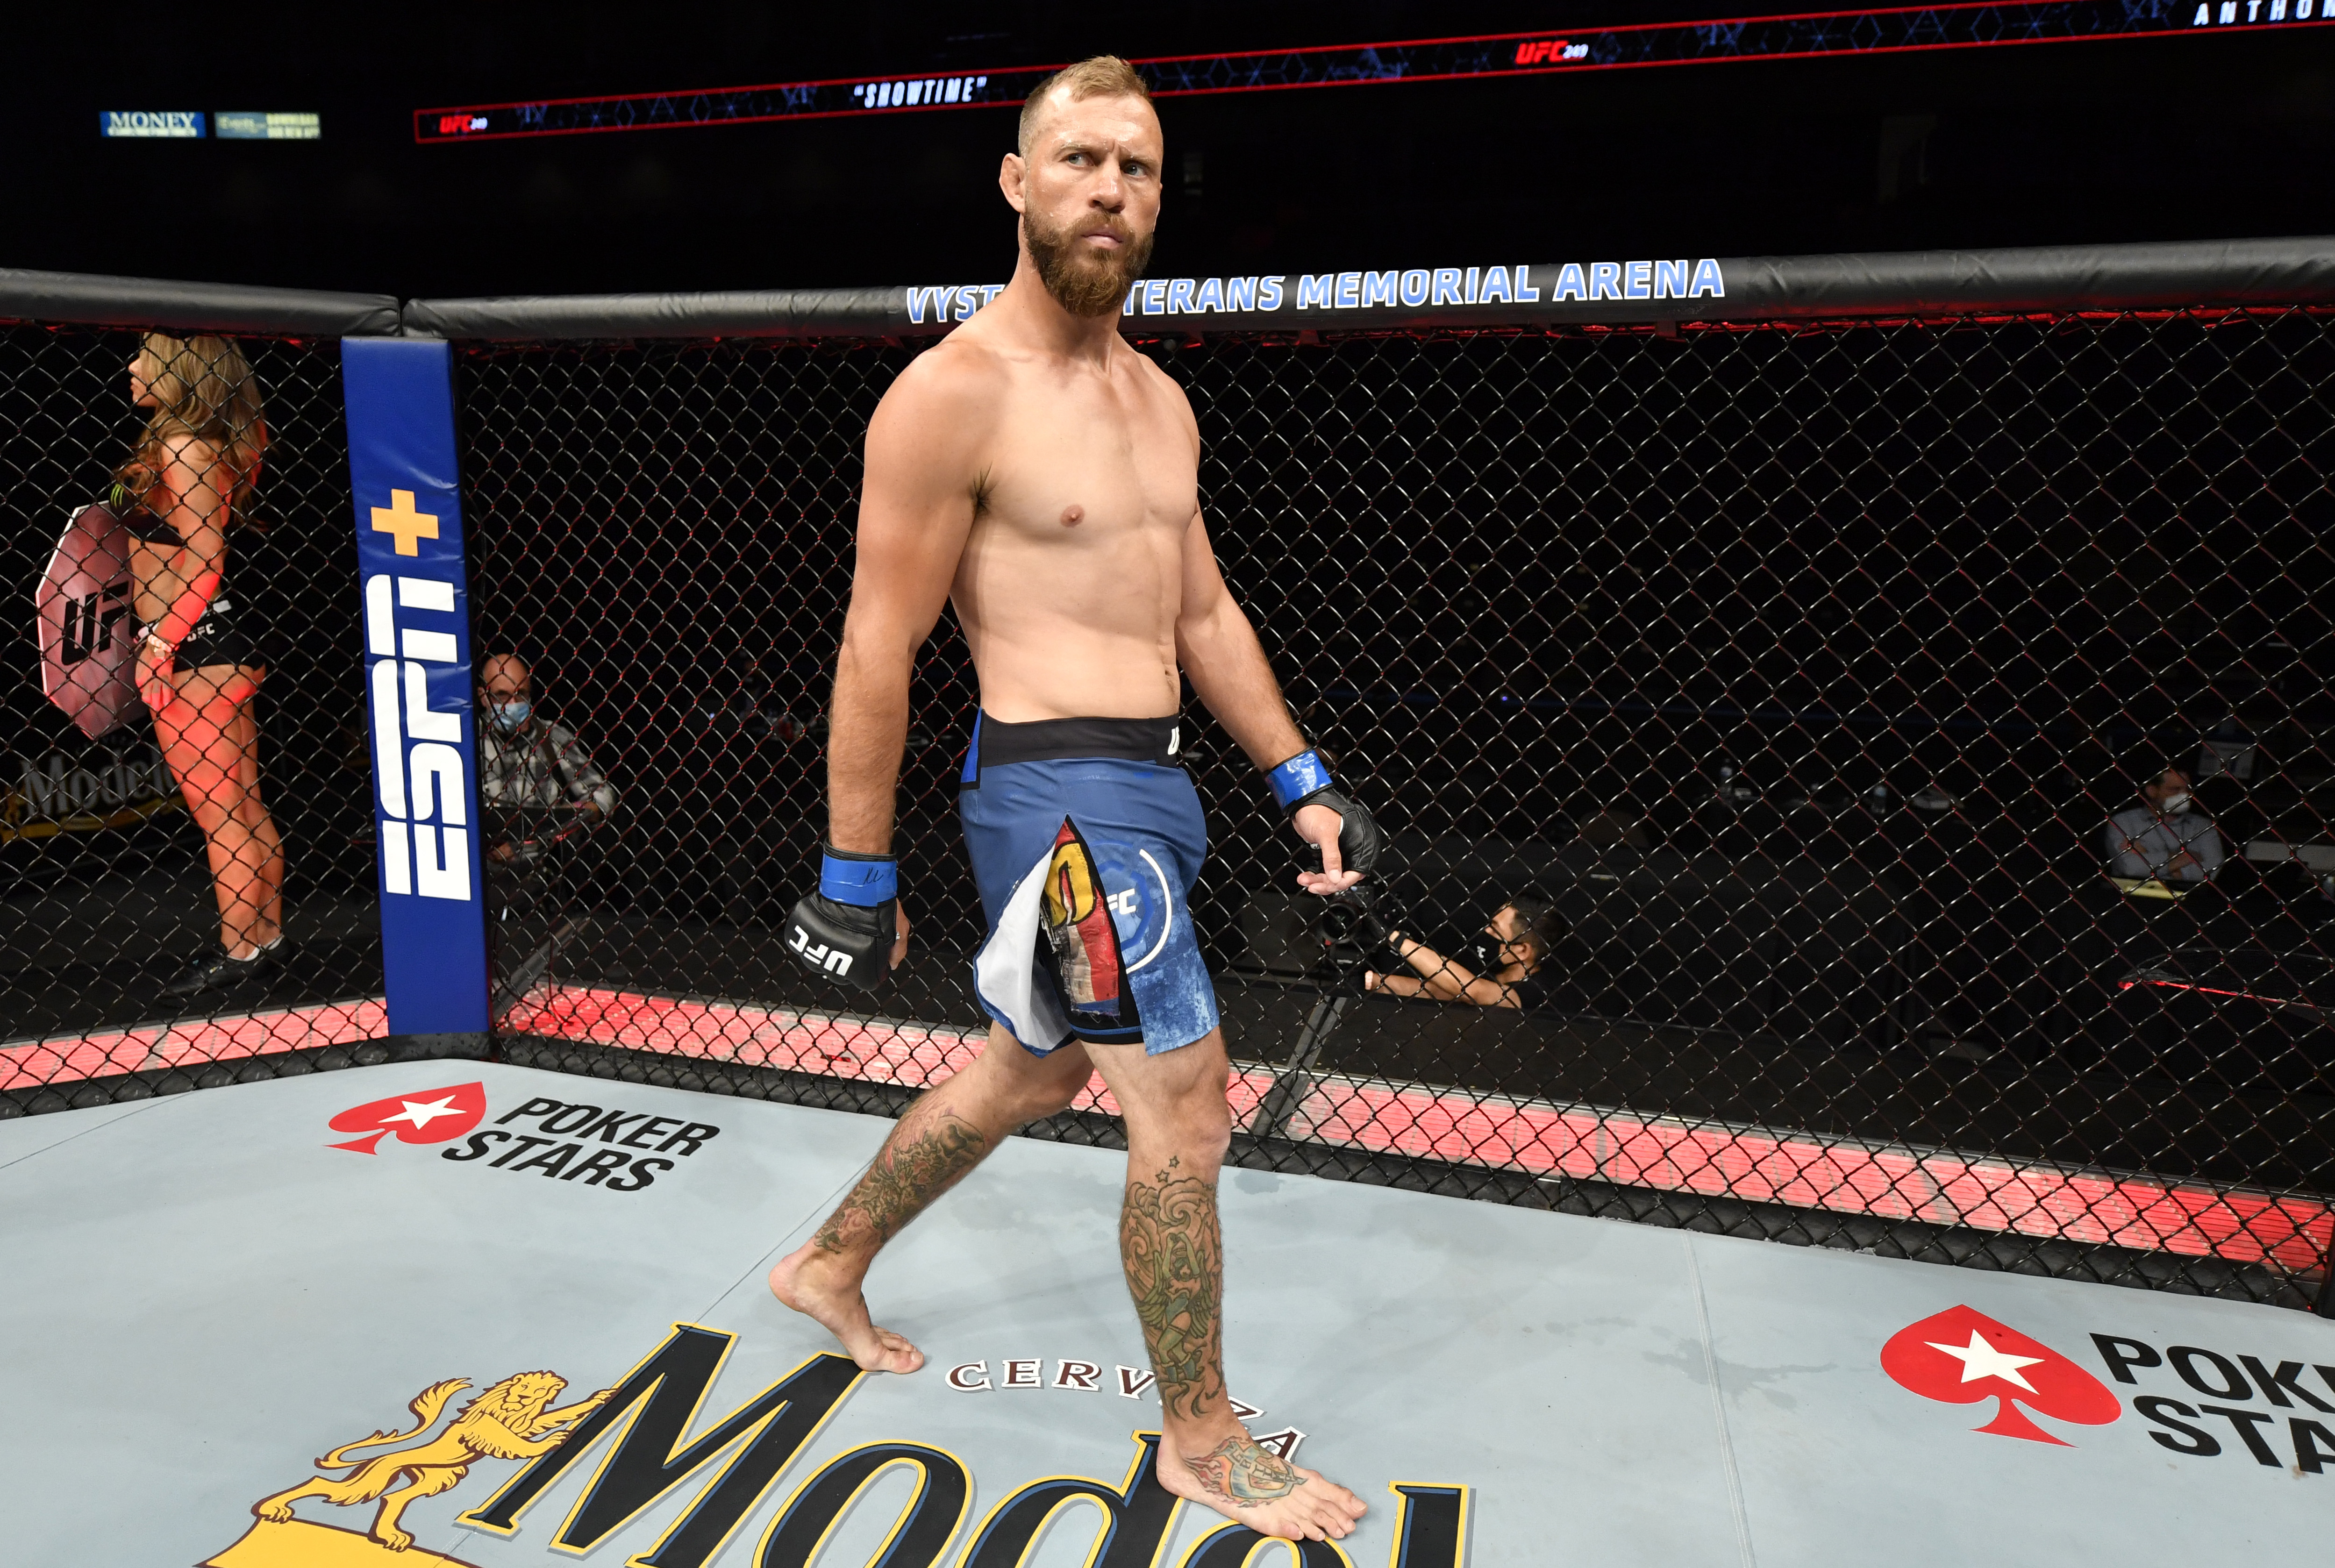 Ufc betting odds 156 bus gb to mb binary options